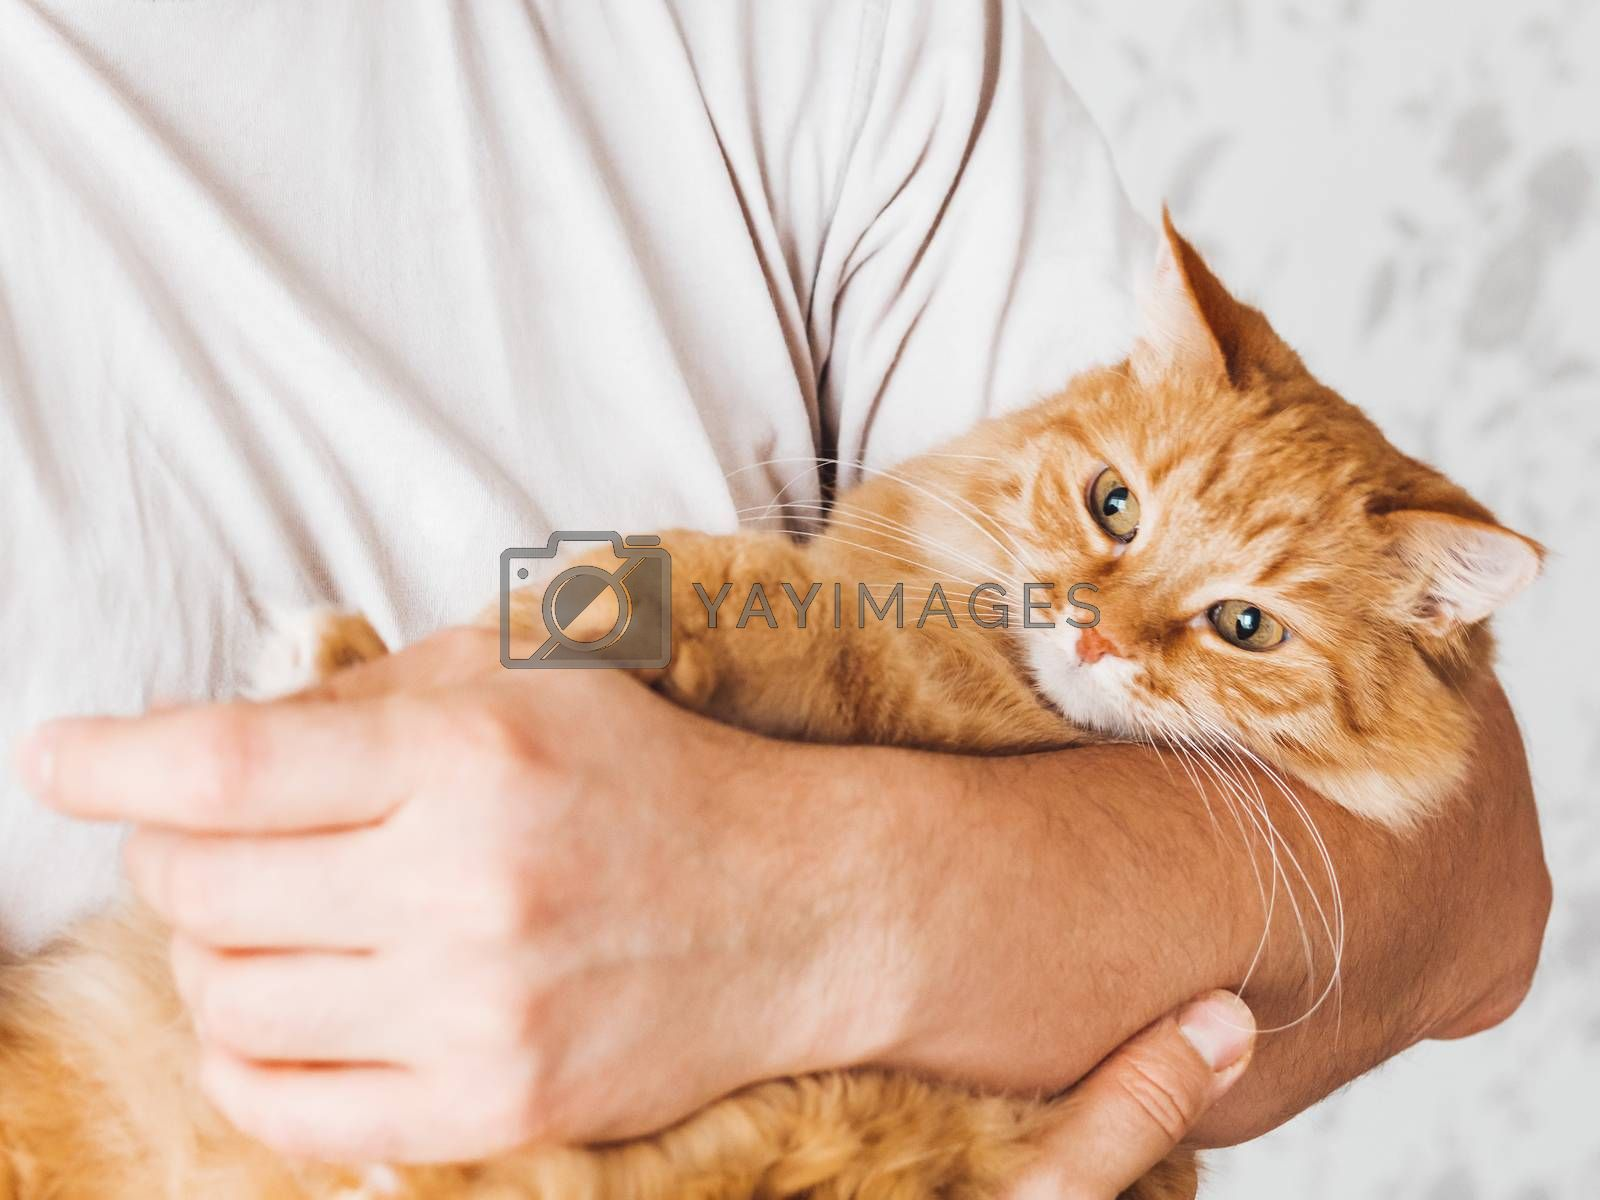 Royalty free image of Man cuddles cute ginger cat. Fluffy pet looks pleased and sleepy. Fuzzy domestic animal. Cat lover. by aksenovko